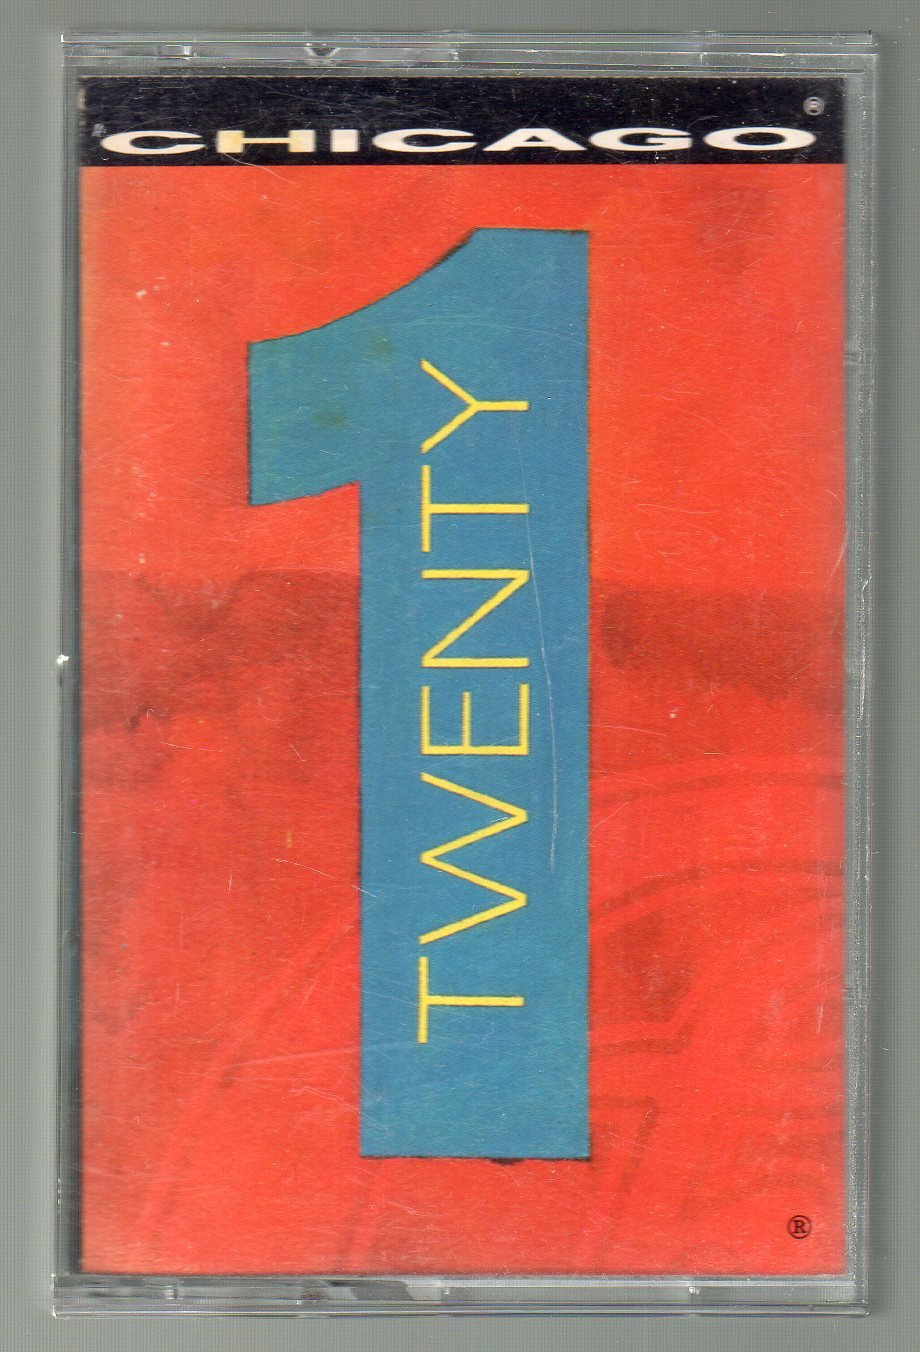 Chicago - Twenty 1 Cassette Tape